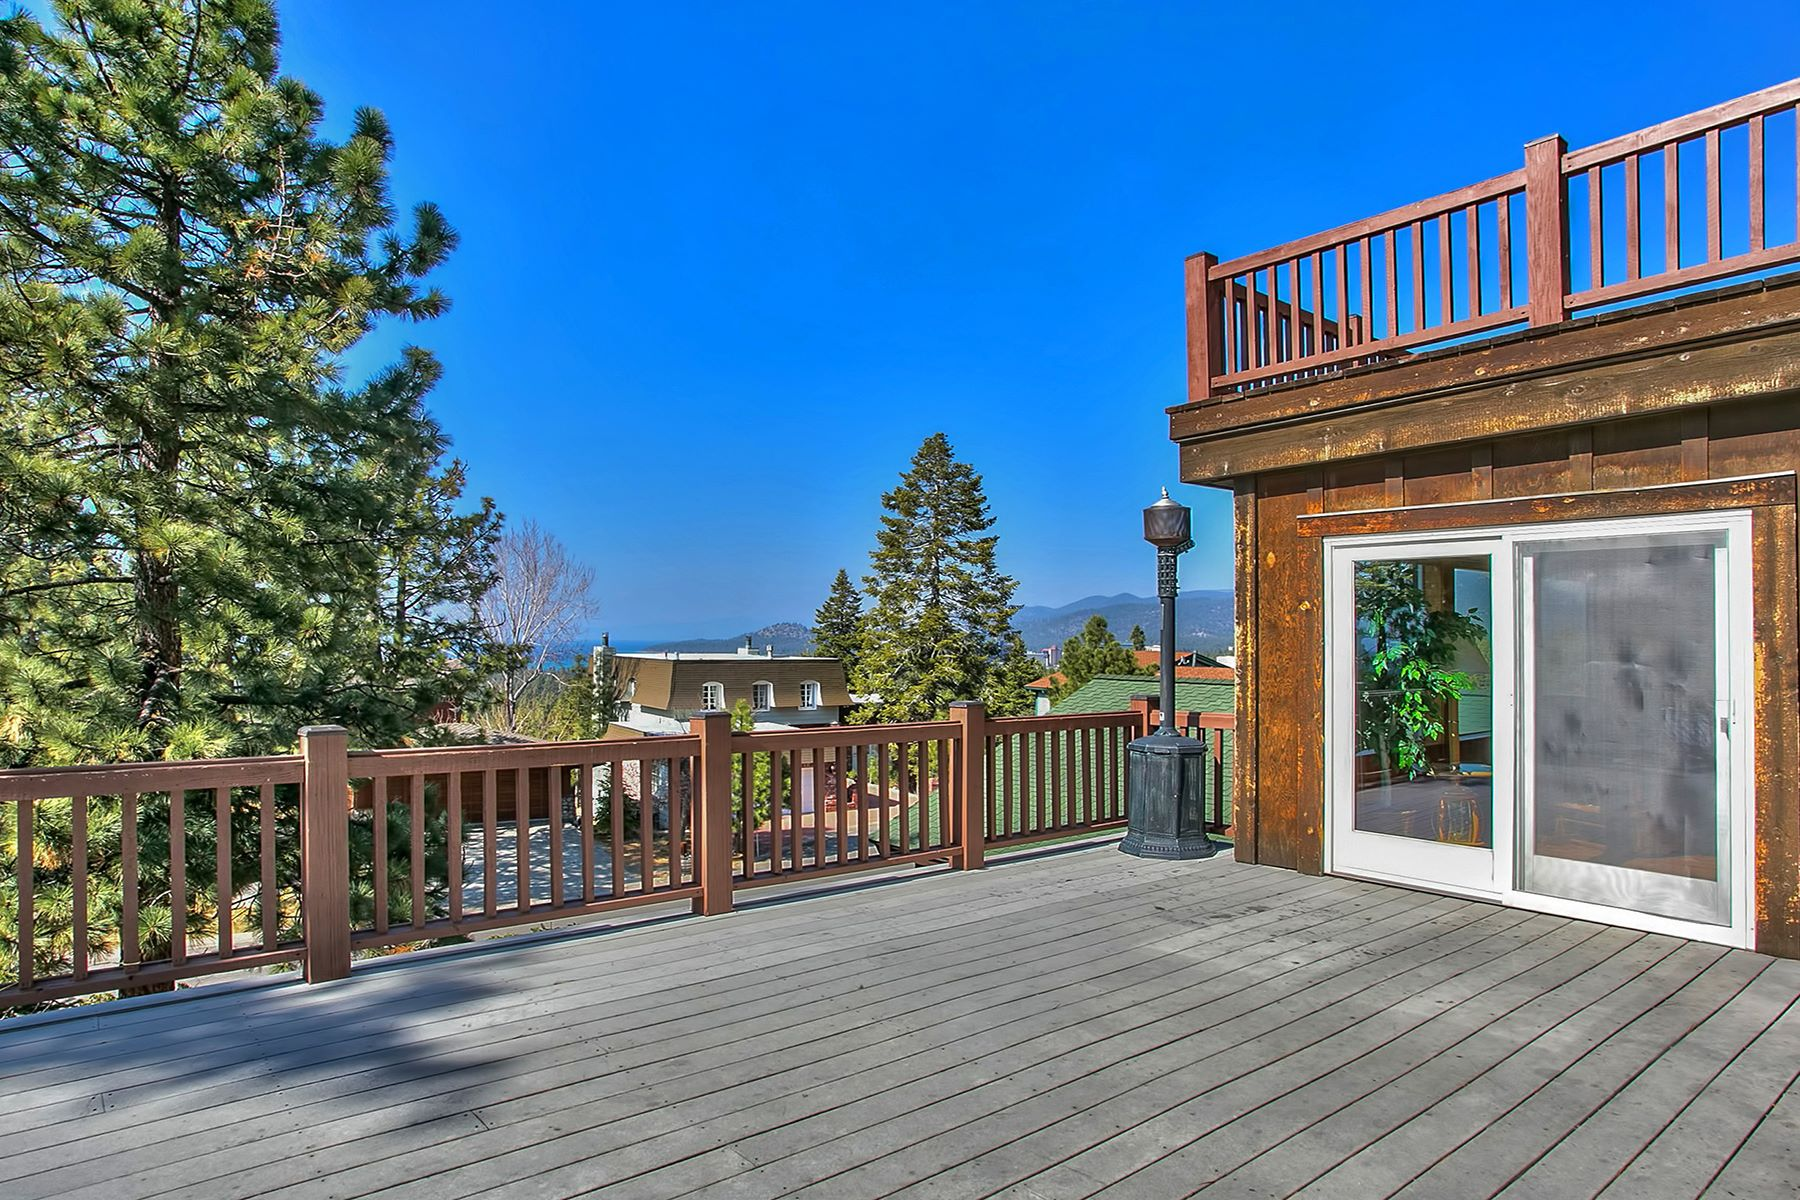 Additional photo for property listing at 3802 Lucinda Court 3802 Lucinda Court South Lake Tahoe, California 96150 United States